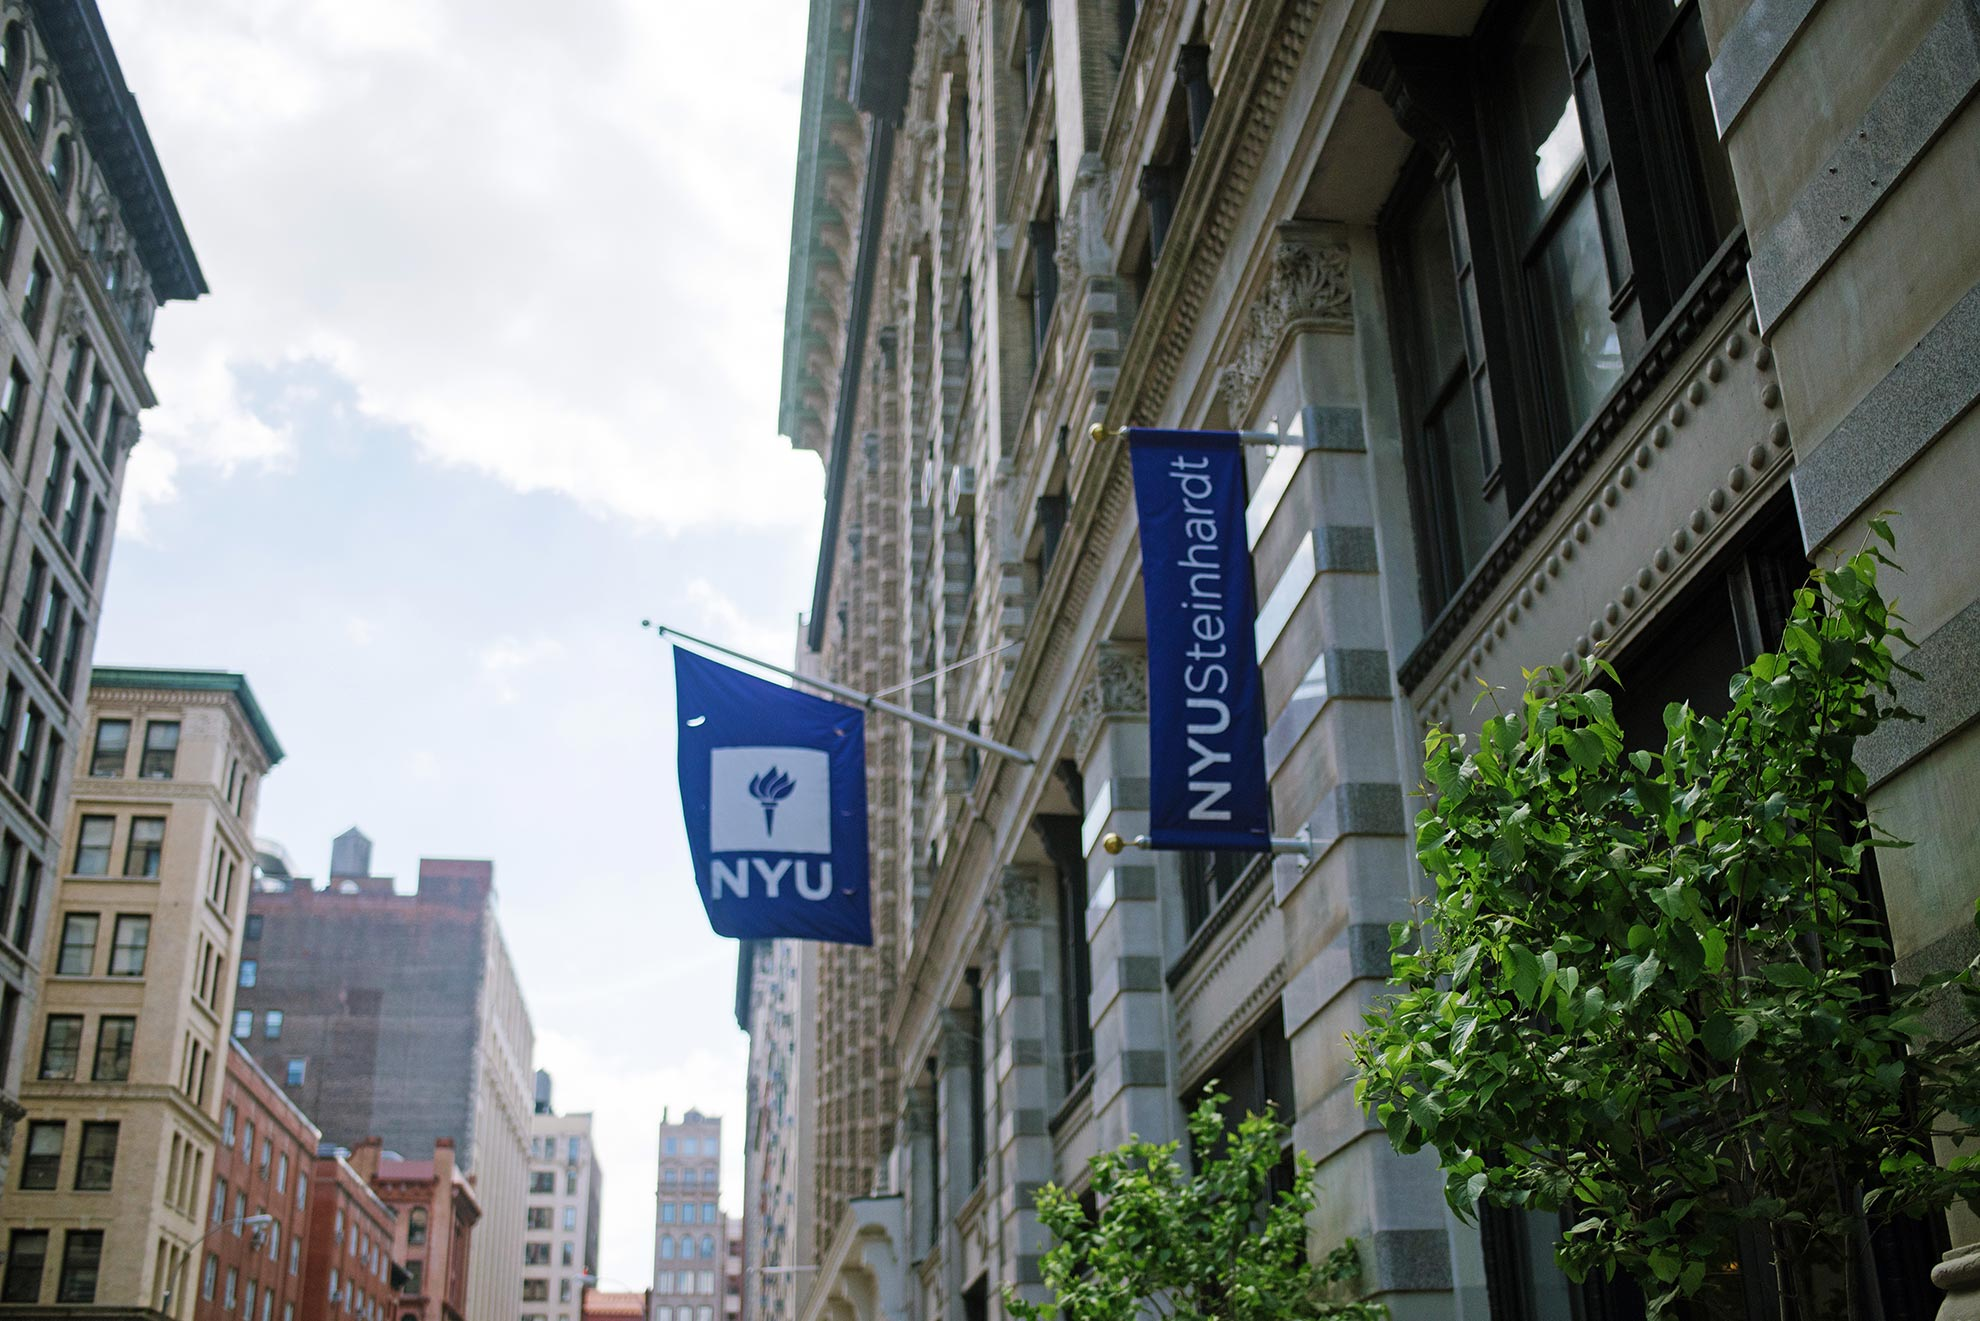 NYU Steinhardt building and flags